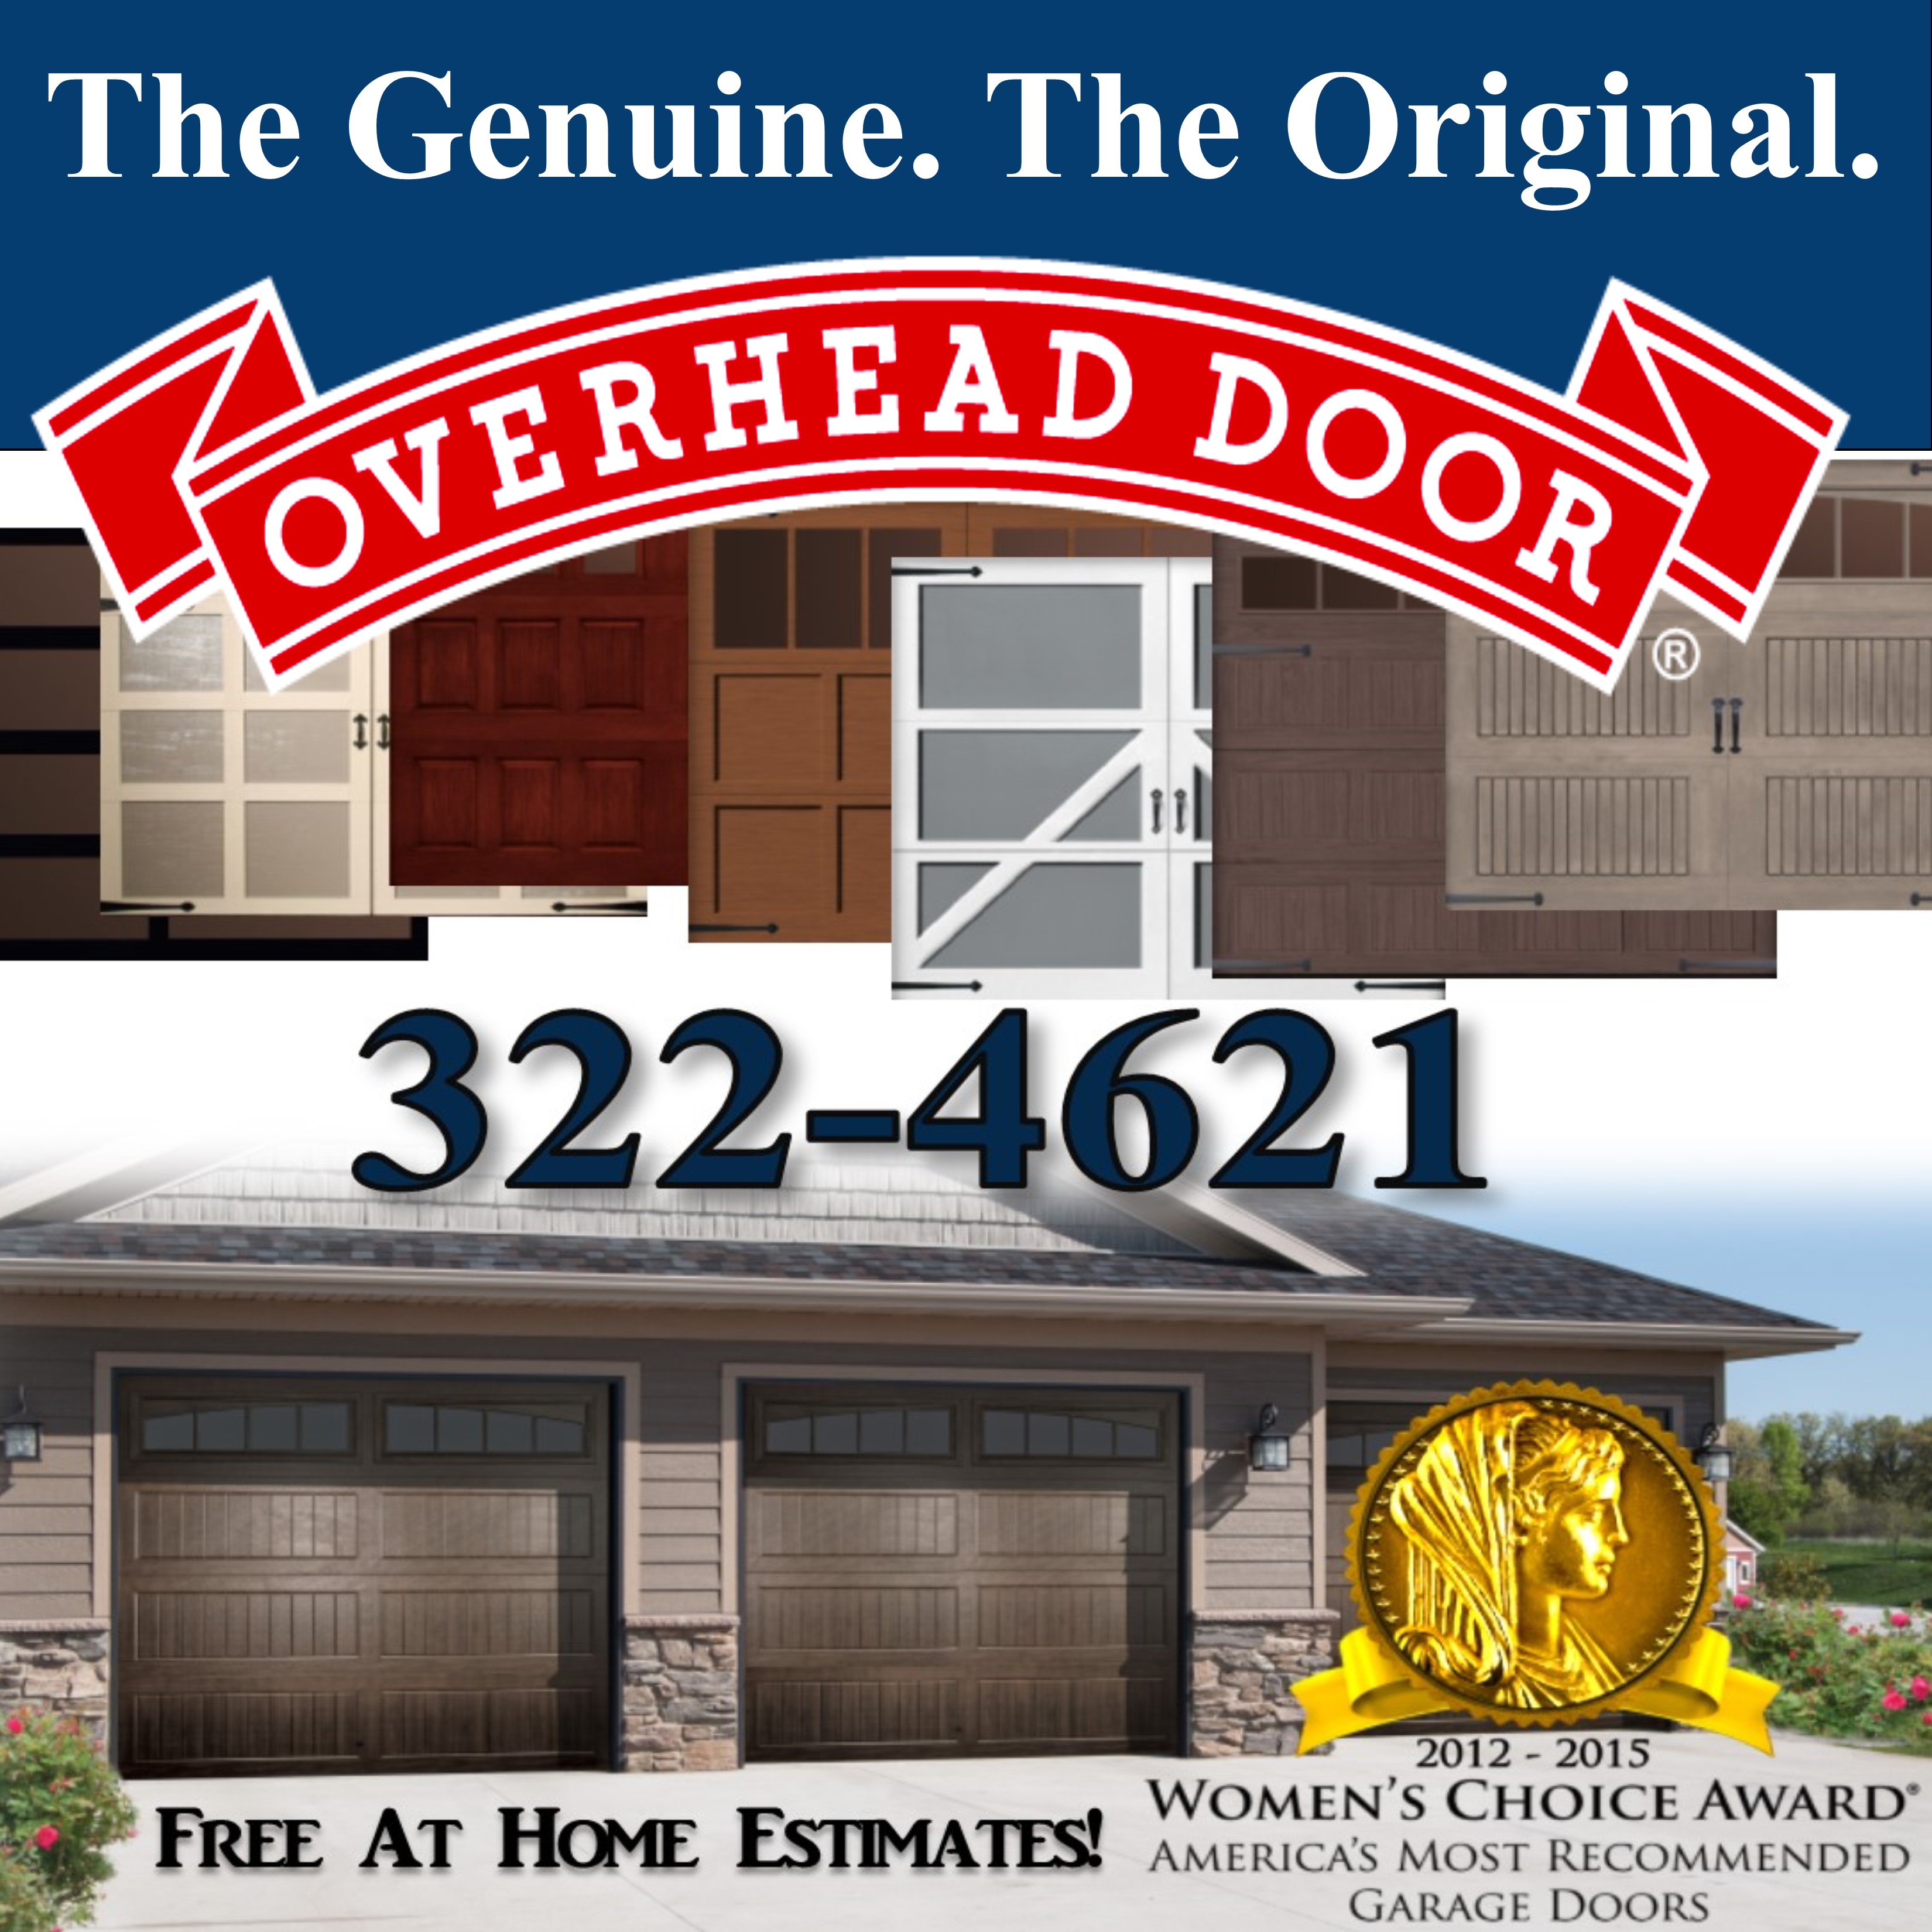 Overhead Door Co. Of Sierra Nevada-Reno Inc. 1290 Holcomb